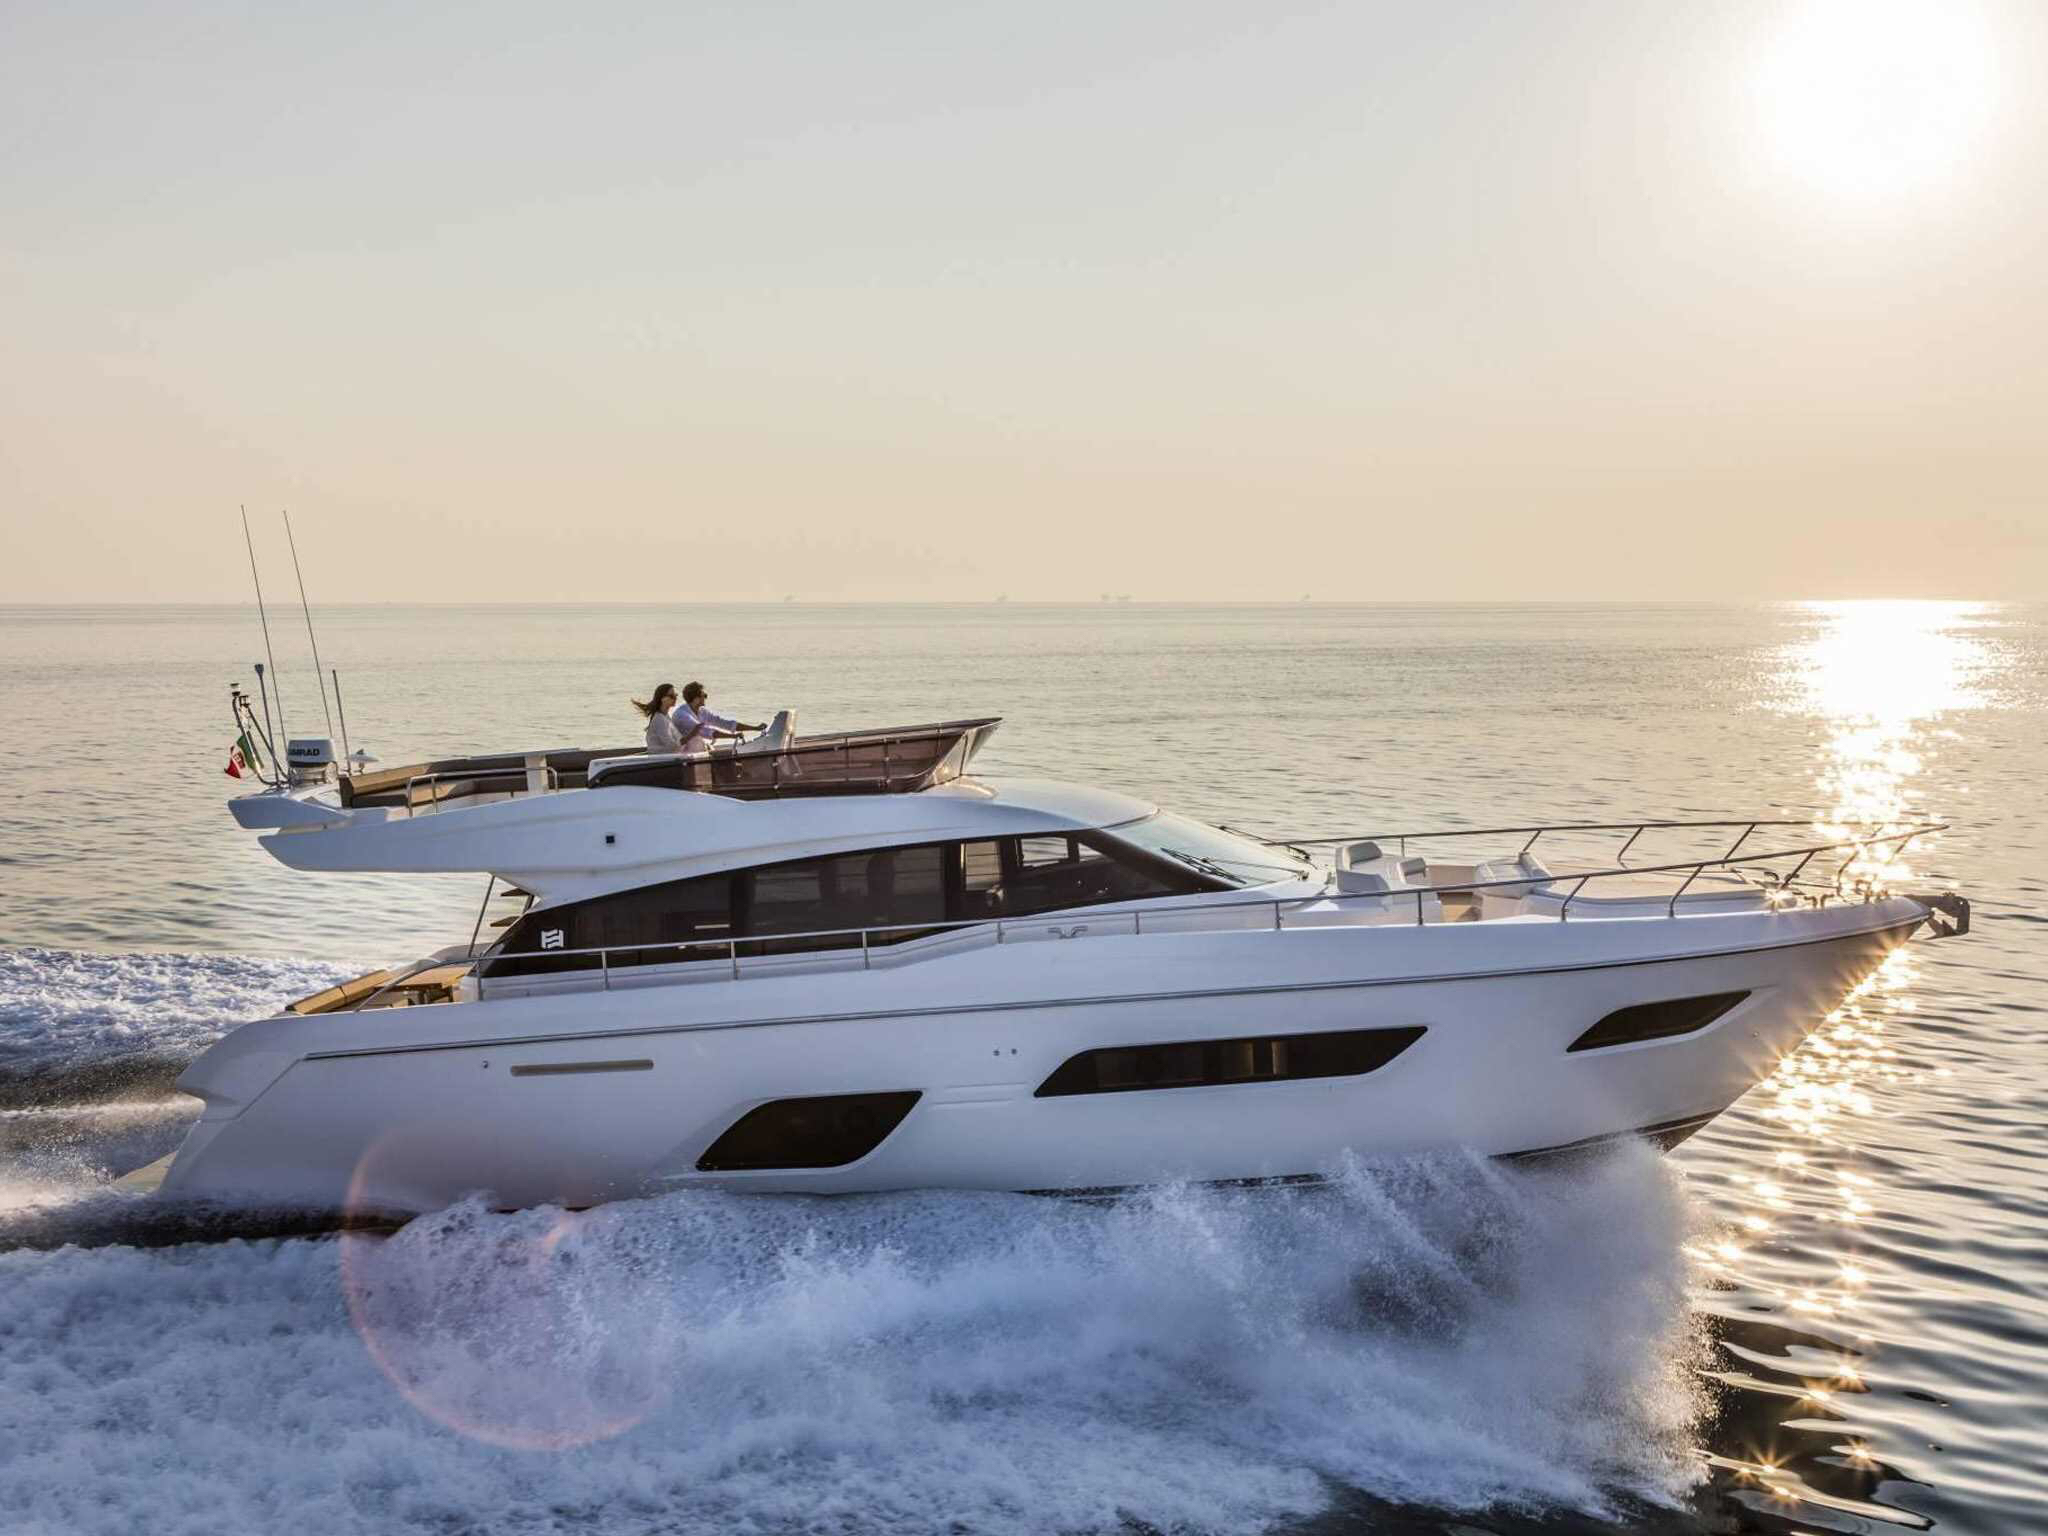 ferretti yachts 550 ferretti group JMA Yachting Port Fréjus Var vente location neuf occasion places de port